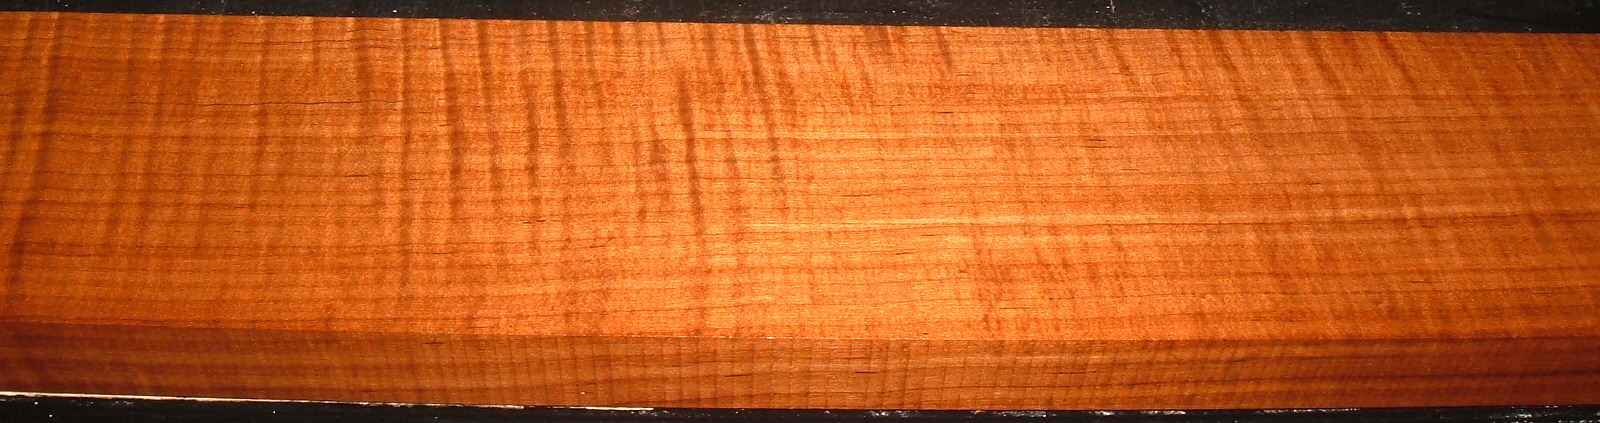 QRM2101-18JK, 1-5/16x4-3/8x53, Quartersawn Roasted Curly Maple